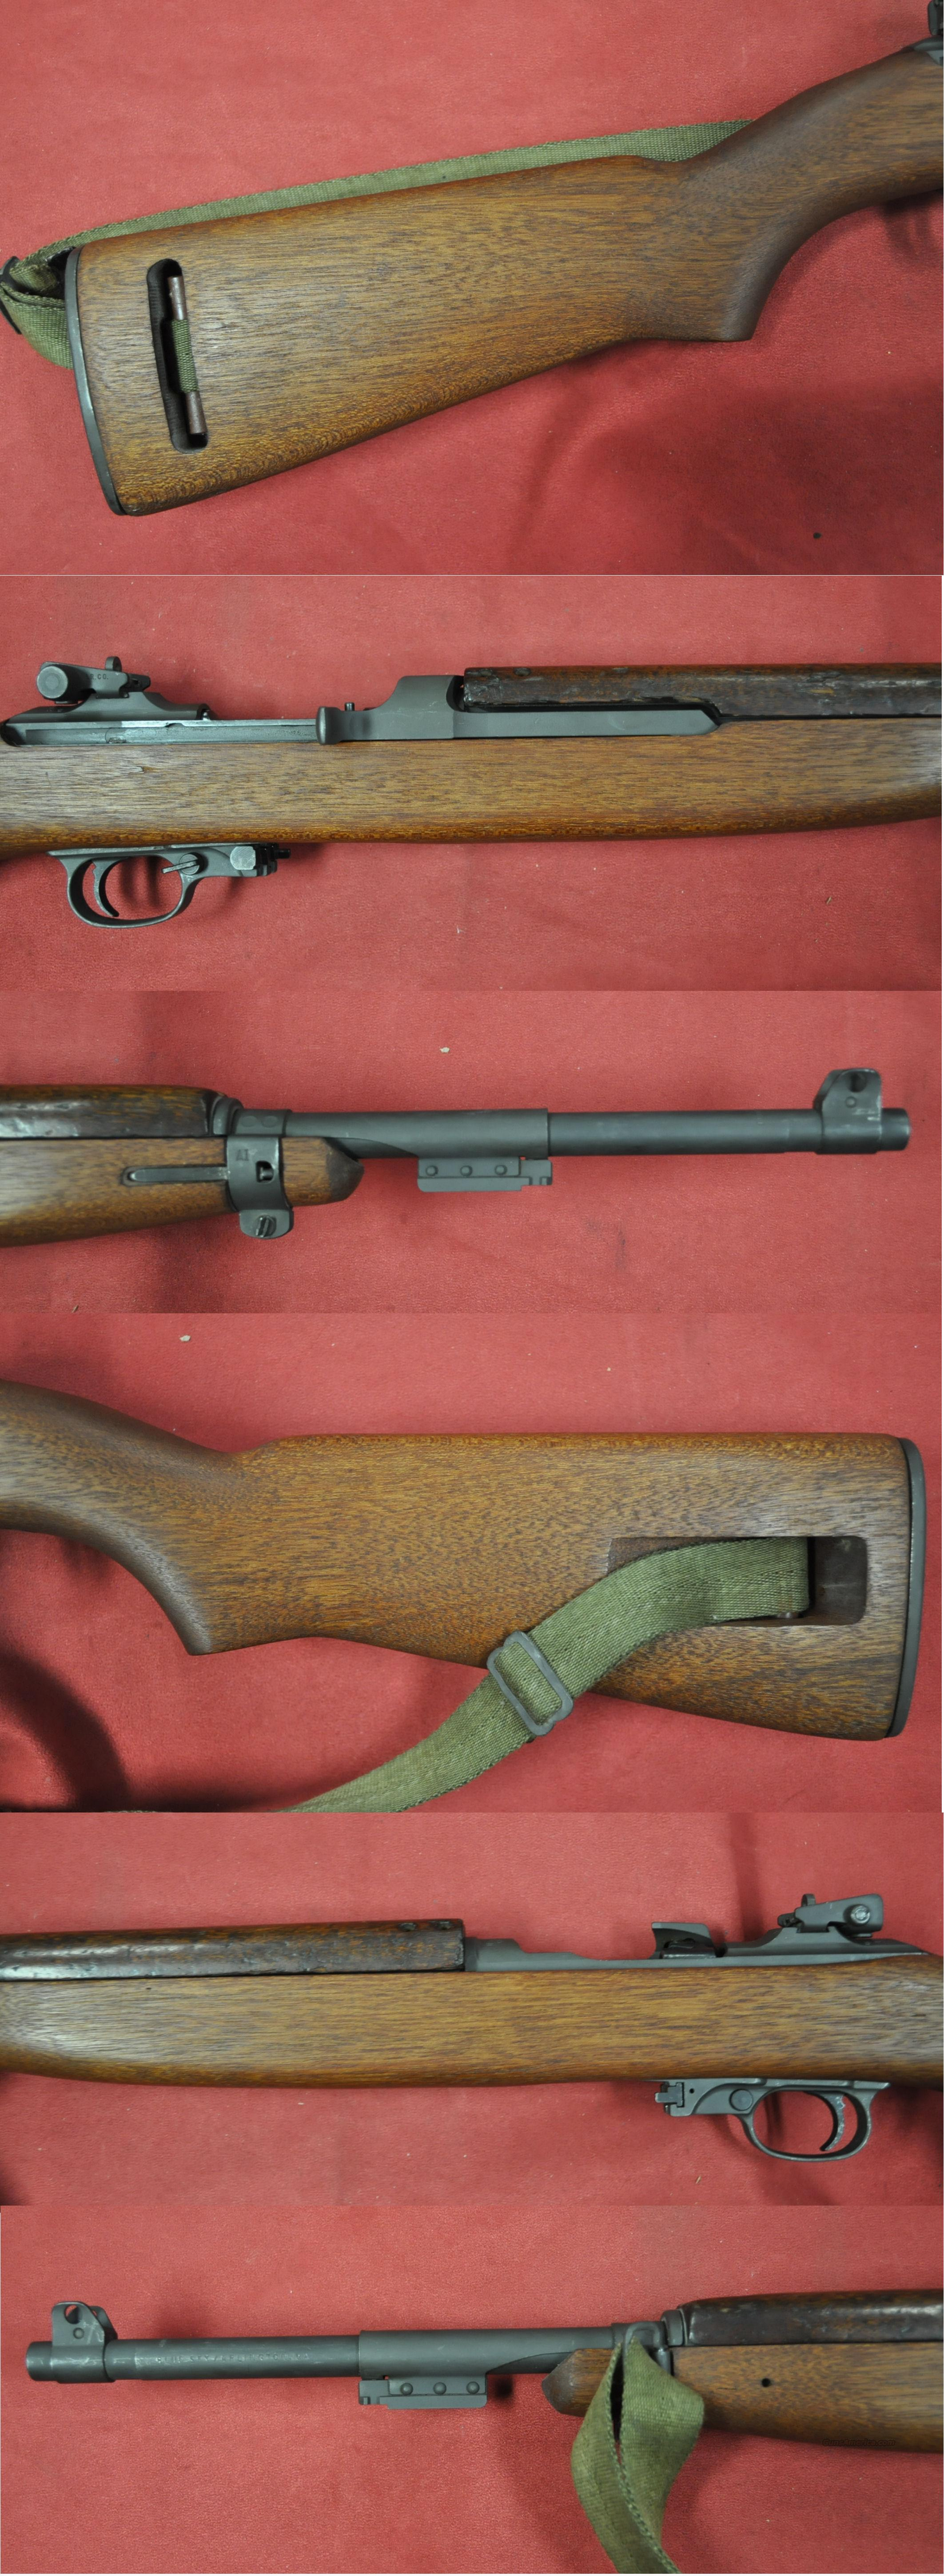 Underwood M1 .30 Cal Carbine  Guns > Rifles > Military Misc. Rifles US > M1 Carbine